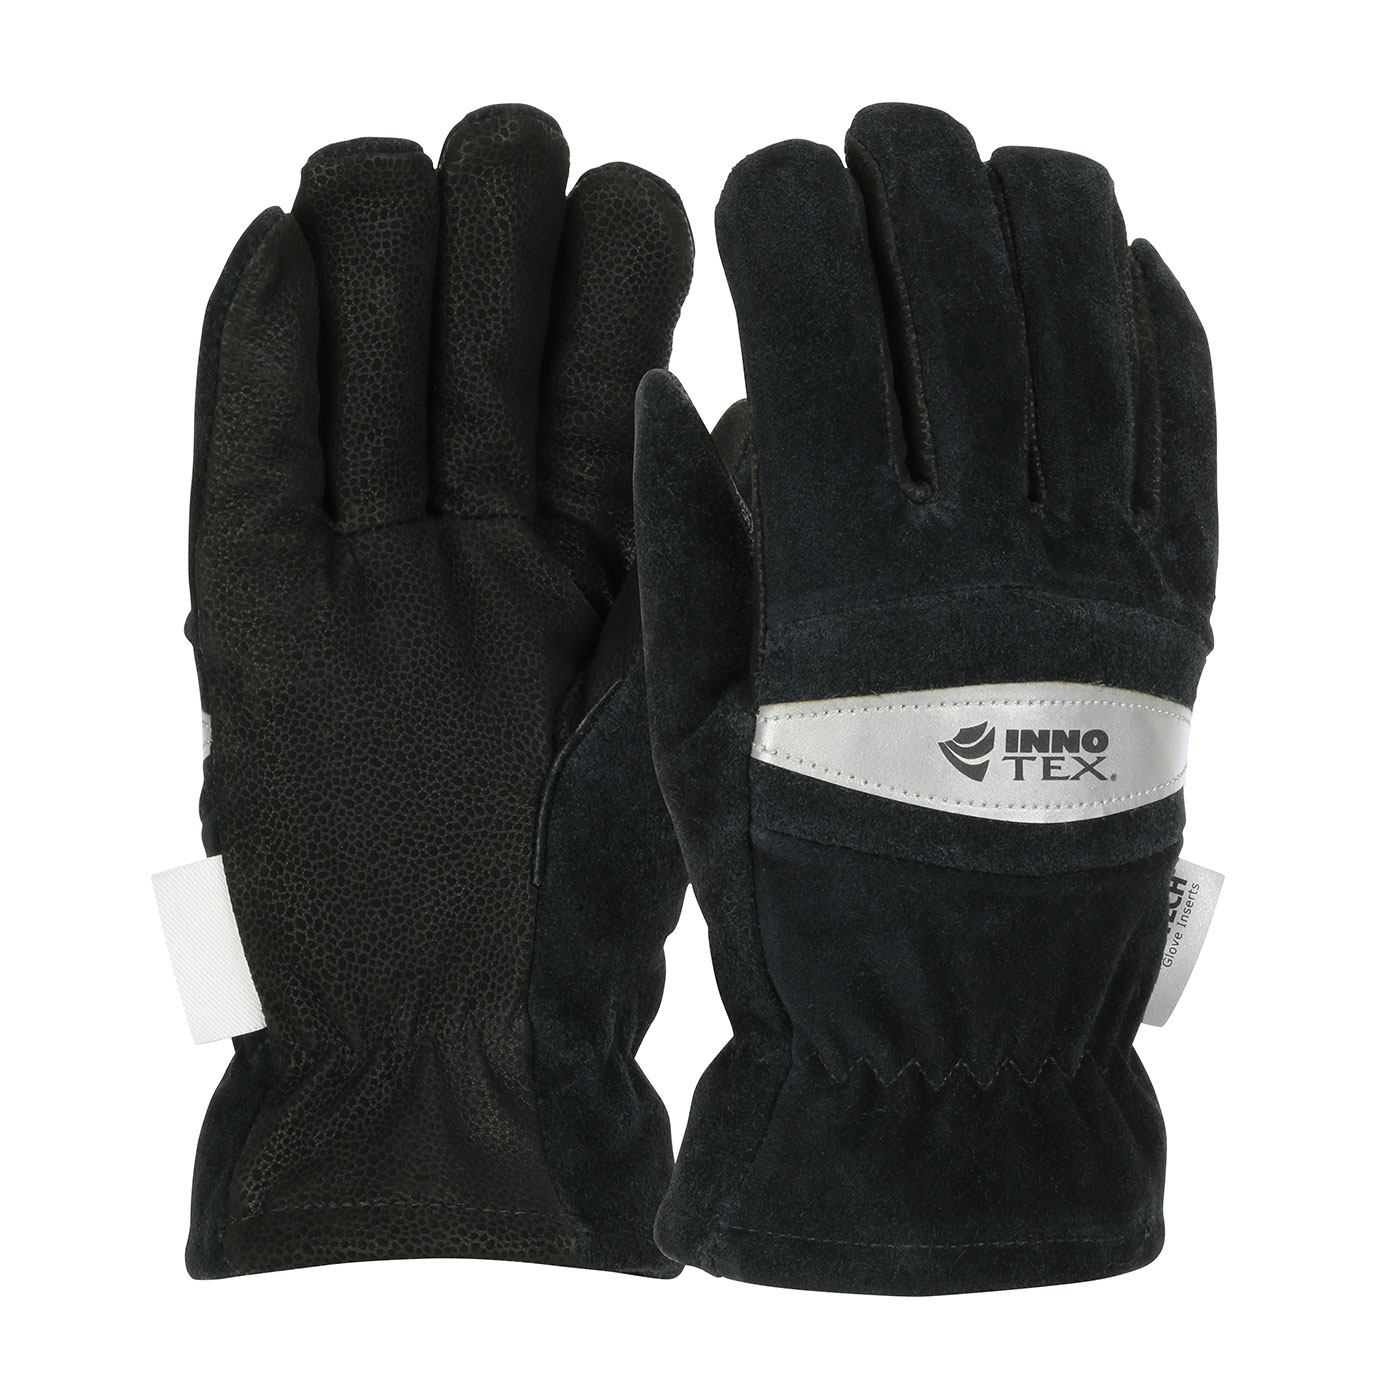 #910-P815 PIP® INNOTEX815™ Structural Firefighting 2D Glove with Split Cowhide Leather Shell and Kevlar® Stitching